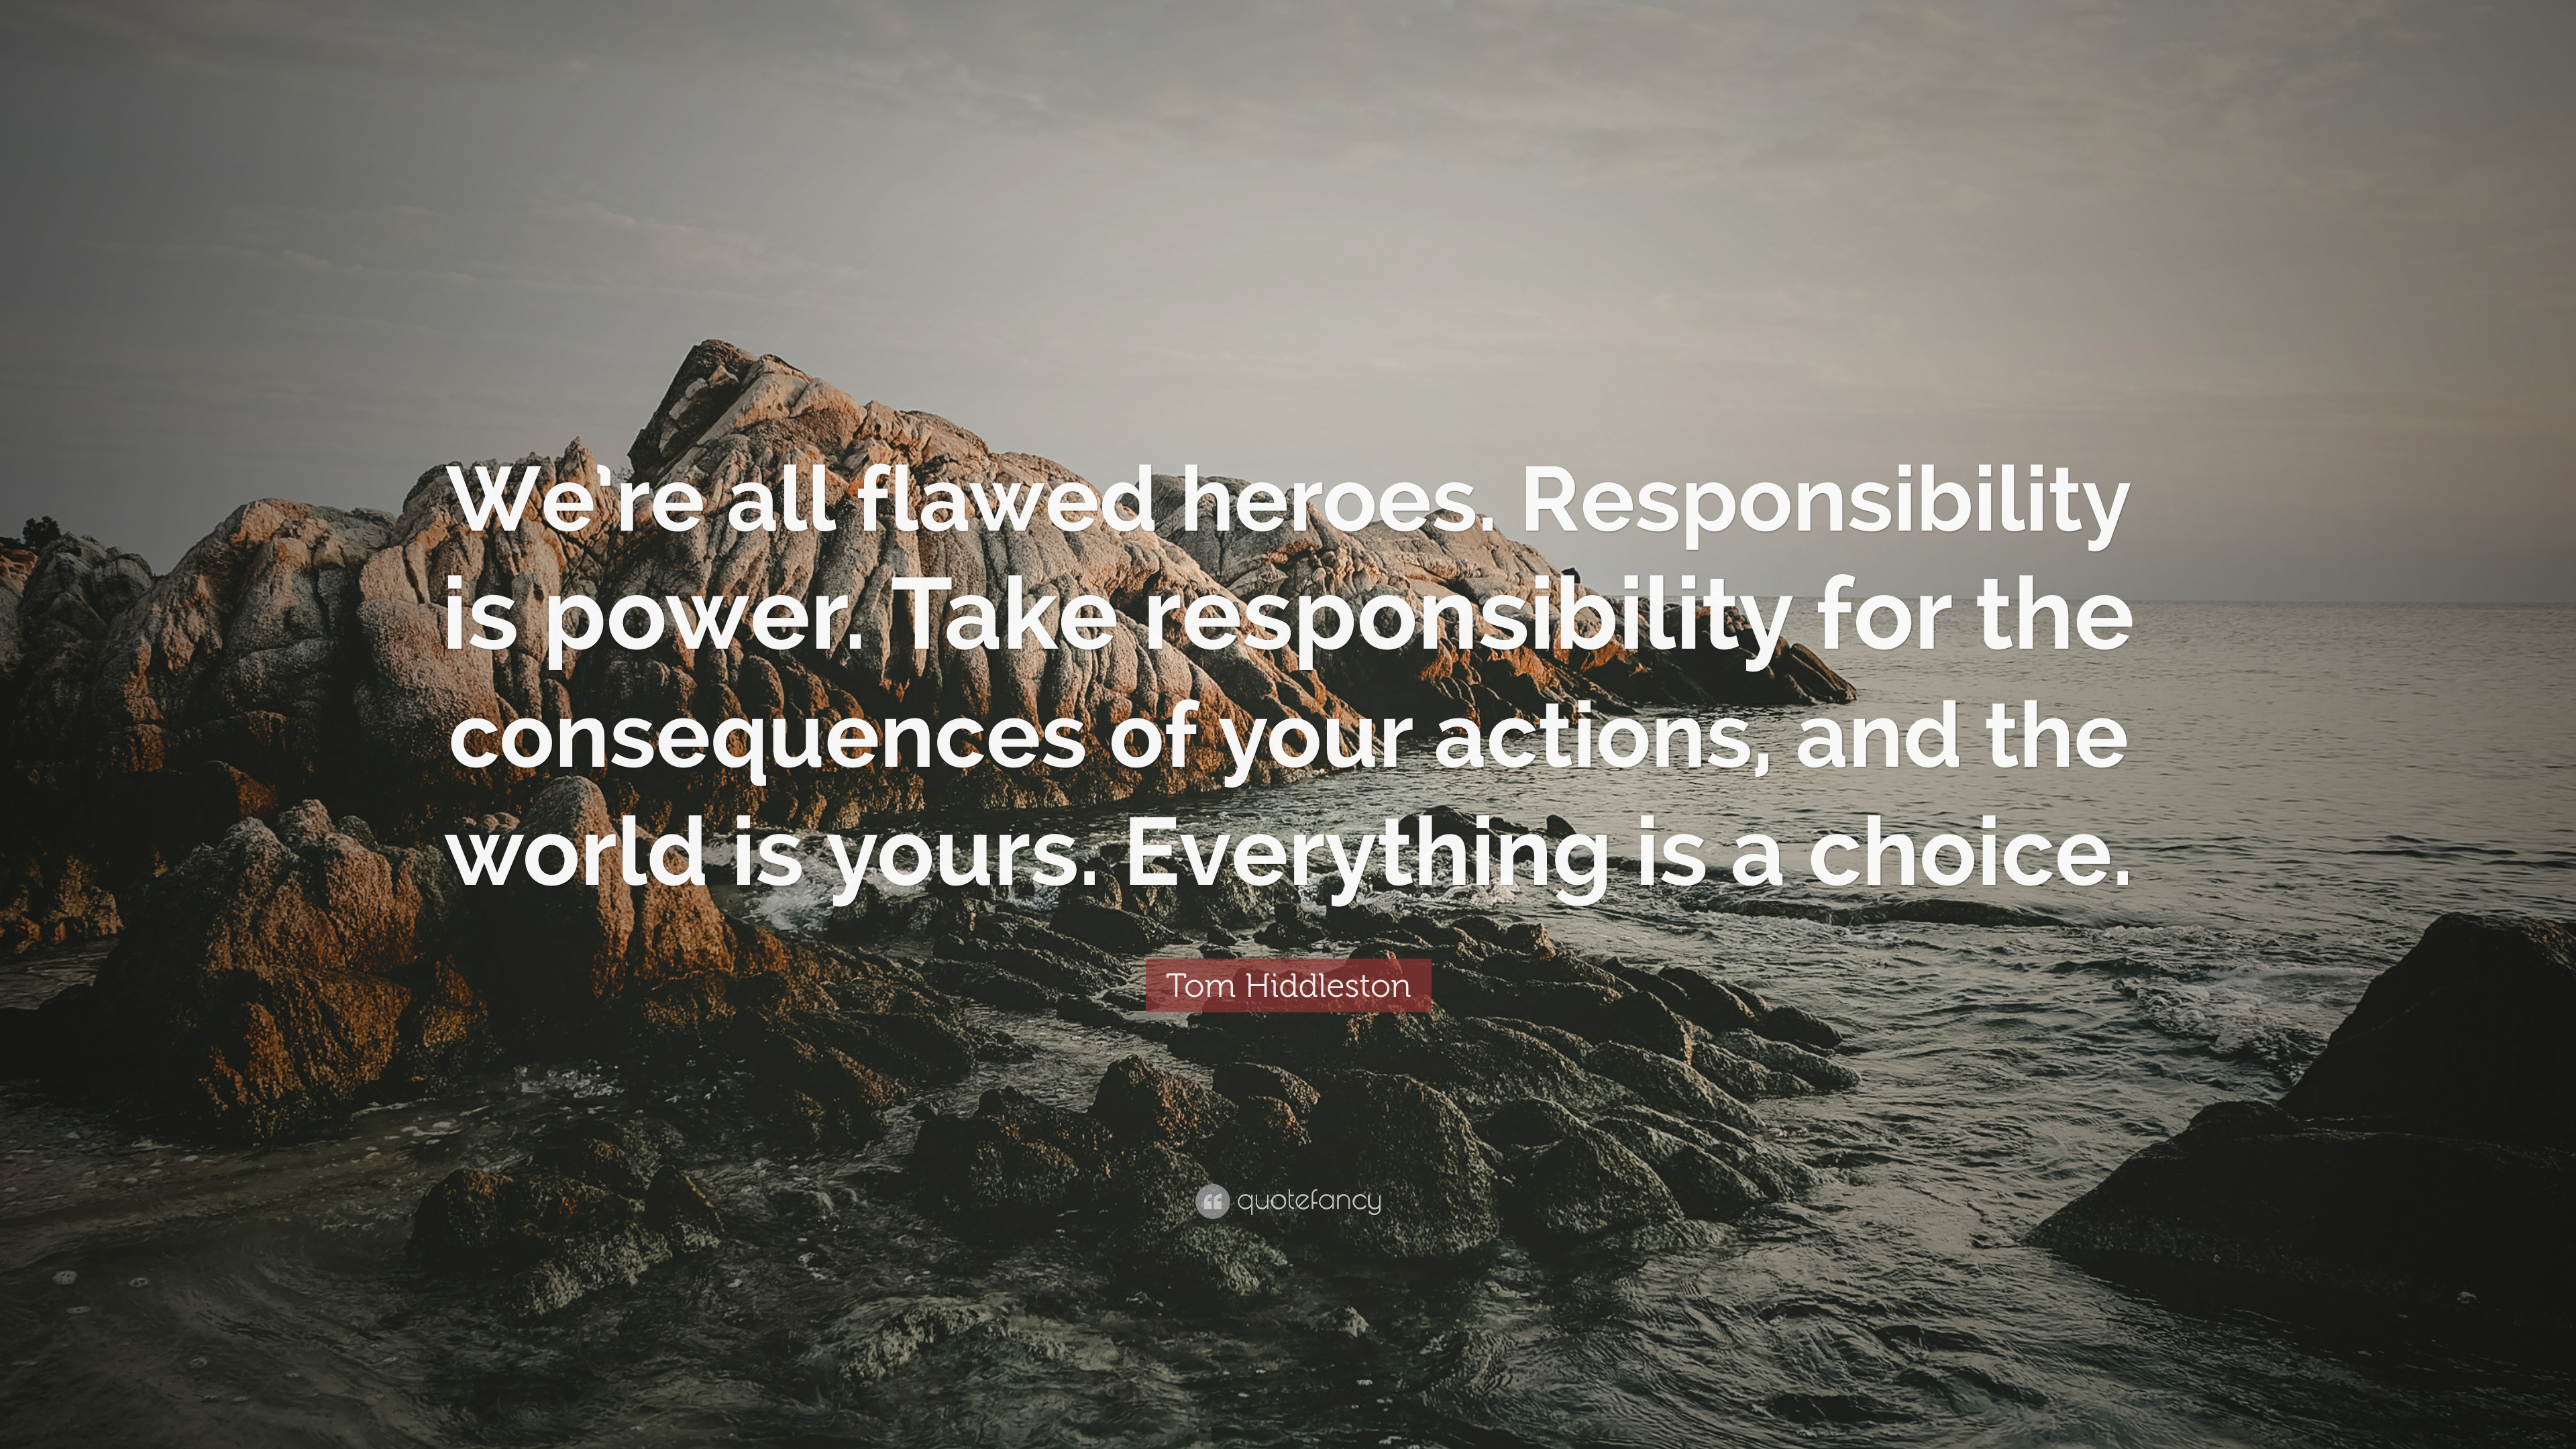 Tom hiddleston quote we re all flawed heroes - The world is yours wallpaper ...